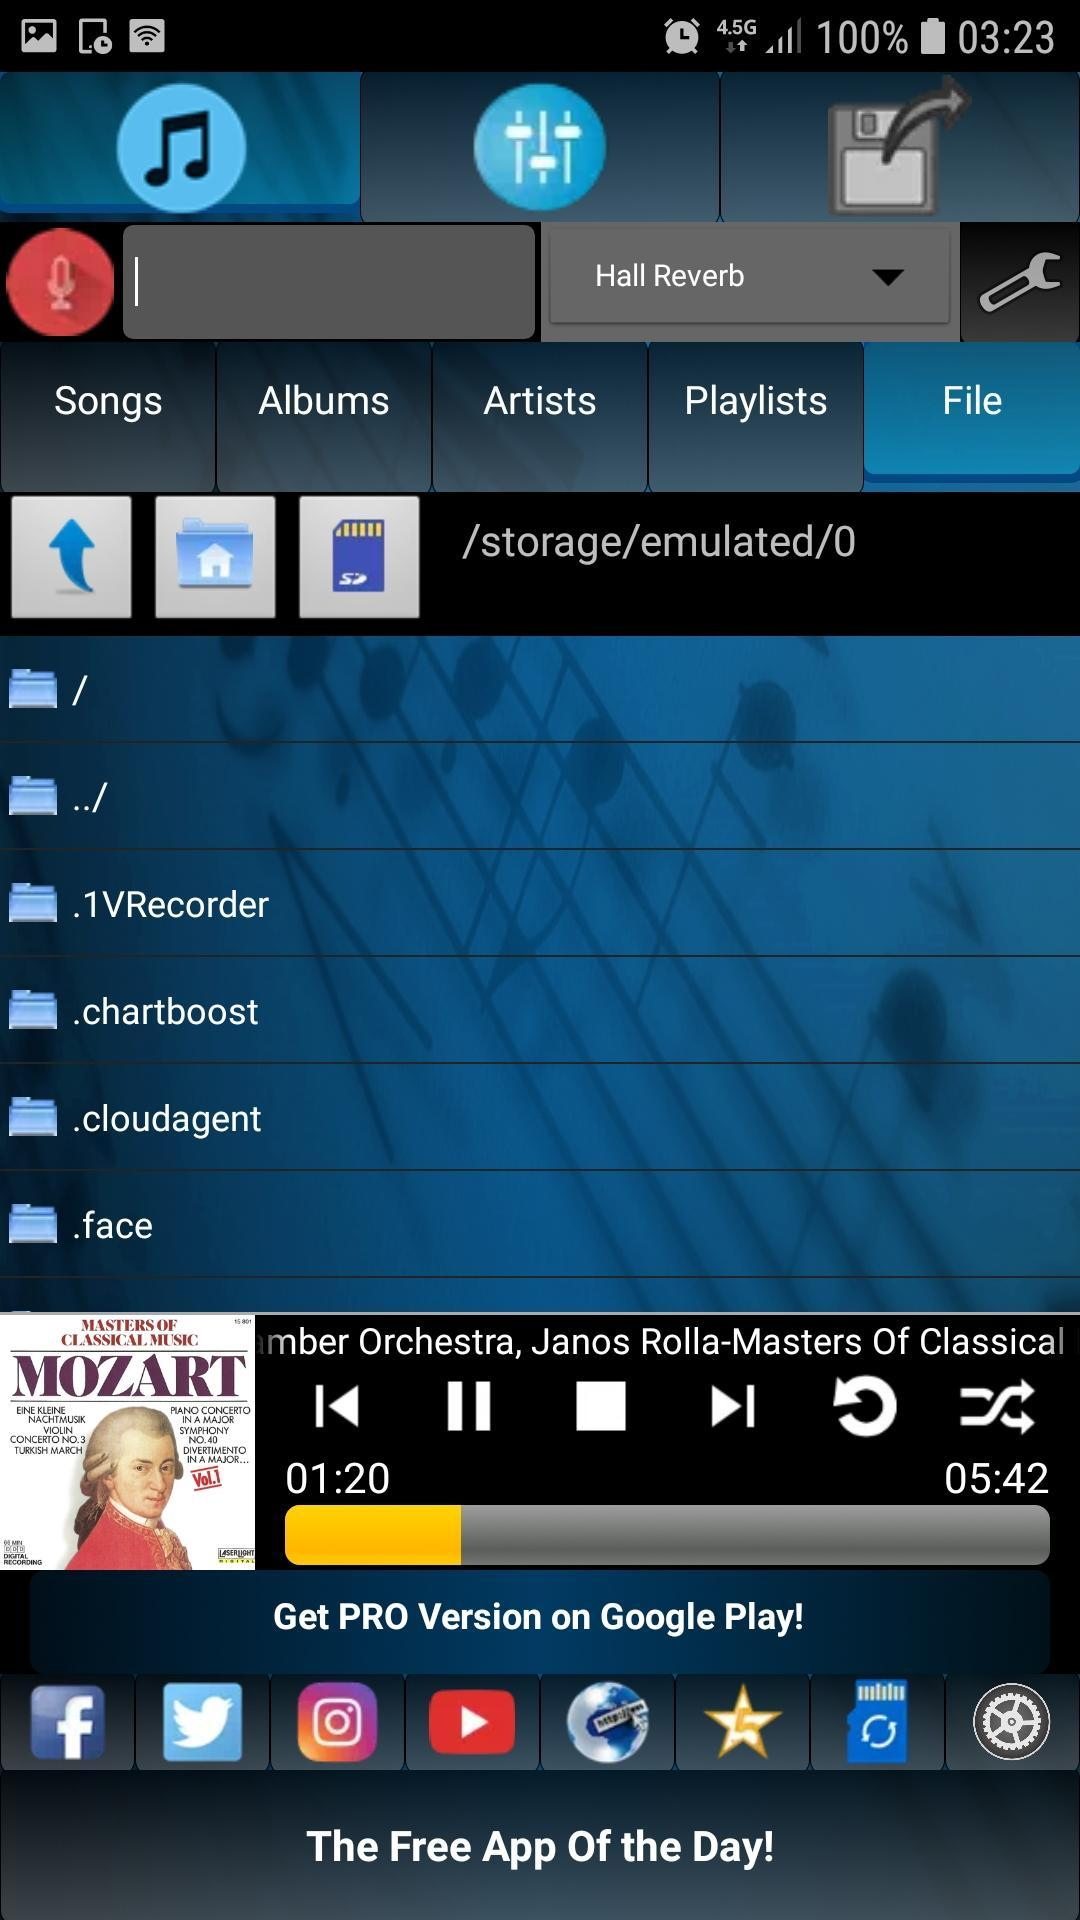 FX Music Karaoke Player for Android - APK Download